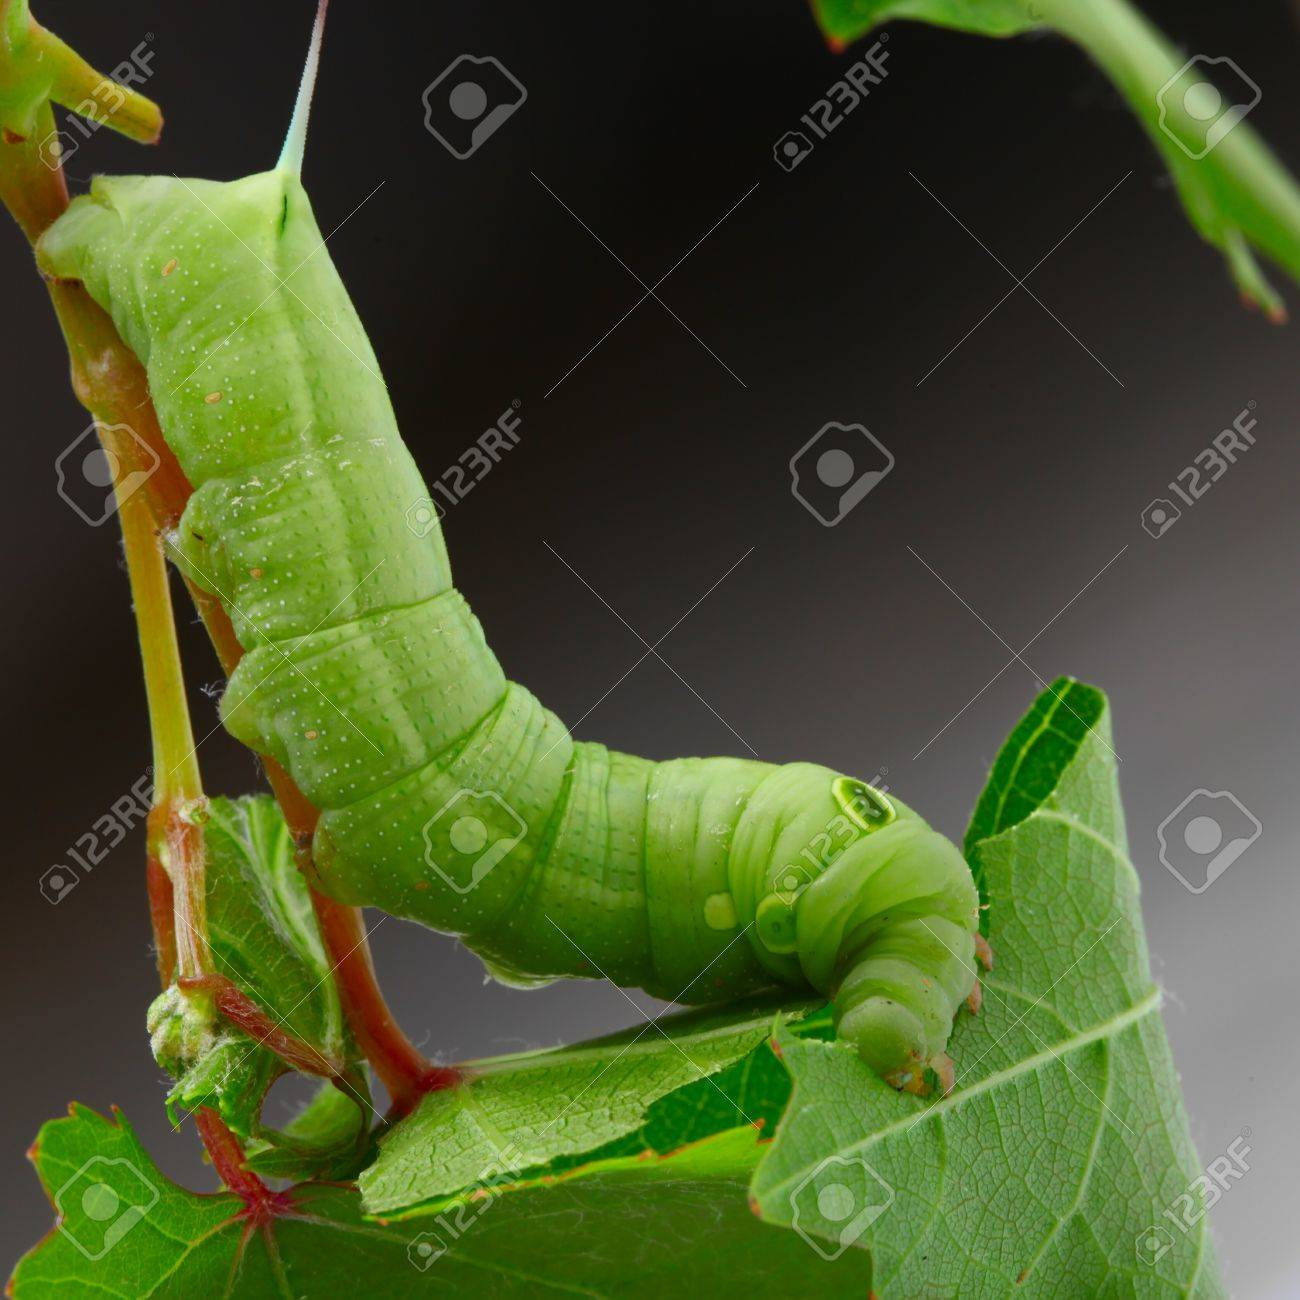 caterpillar on a grape leaf stock photo picture and royalty free